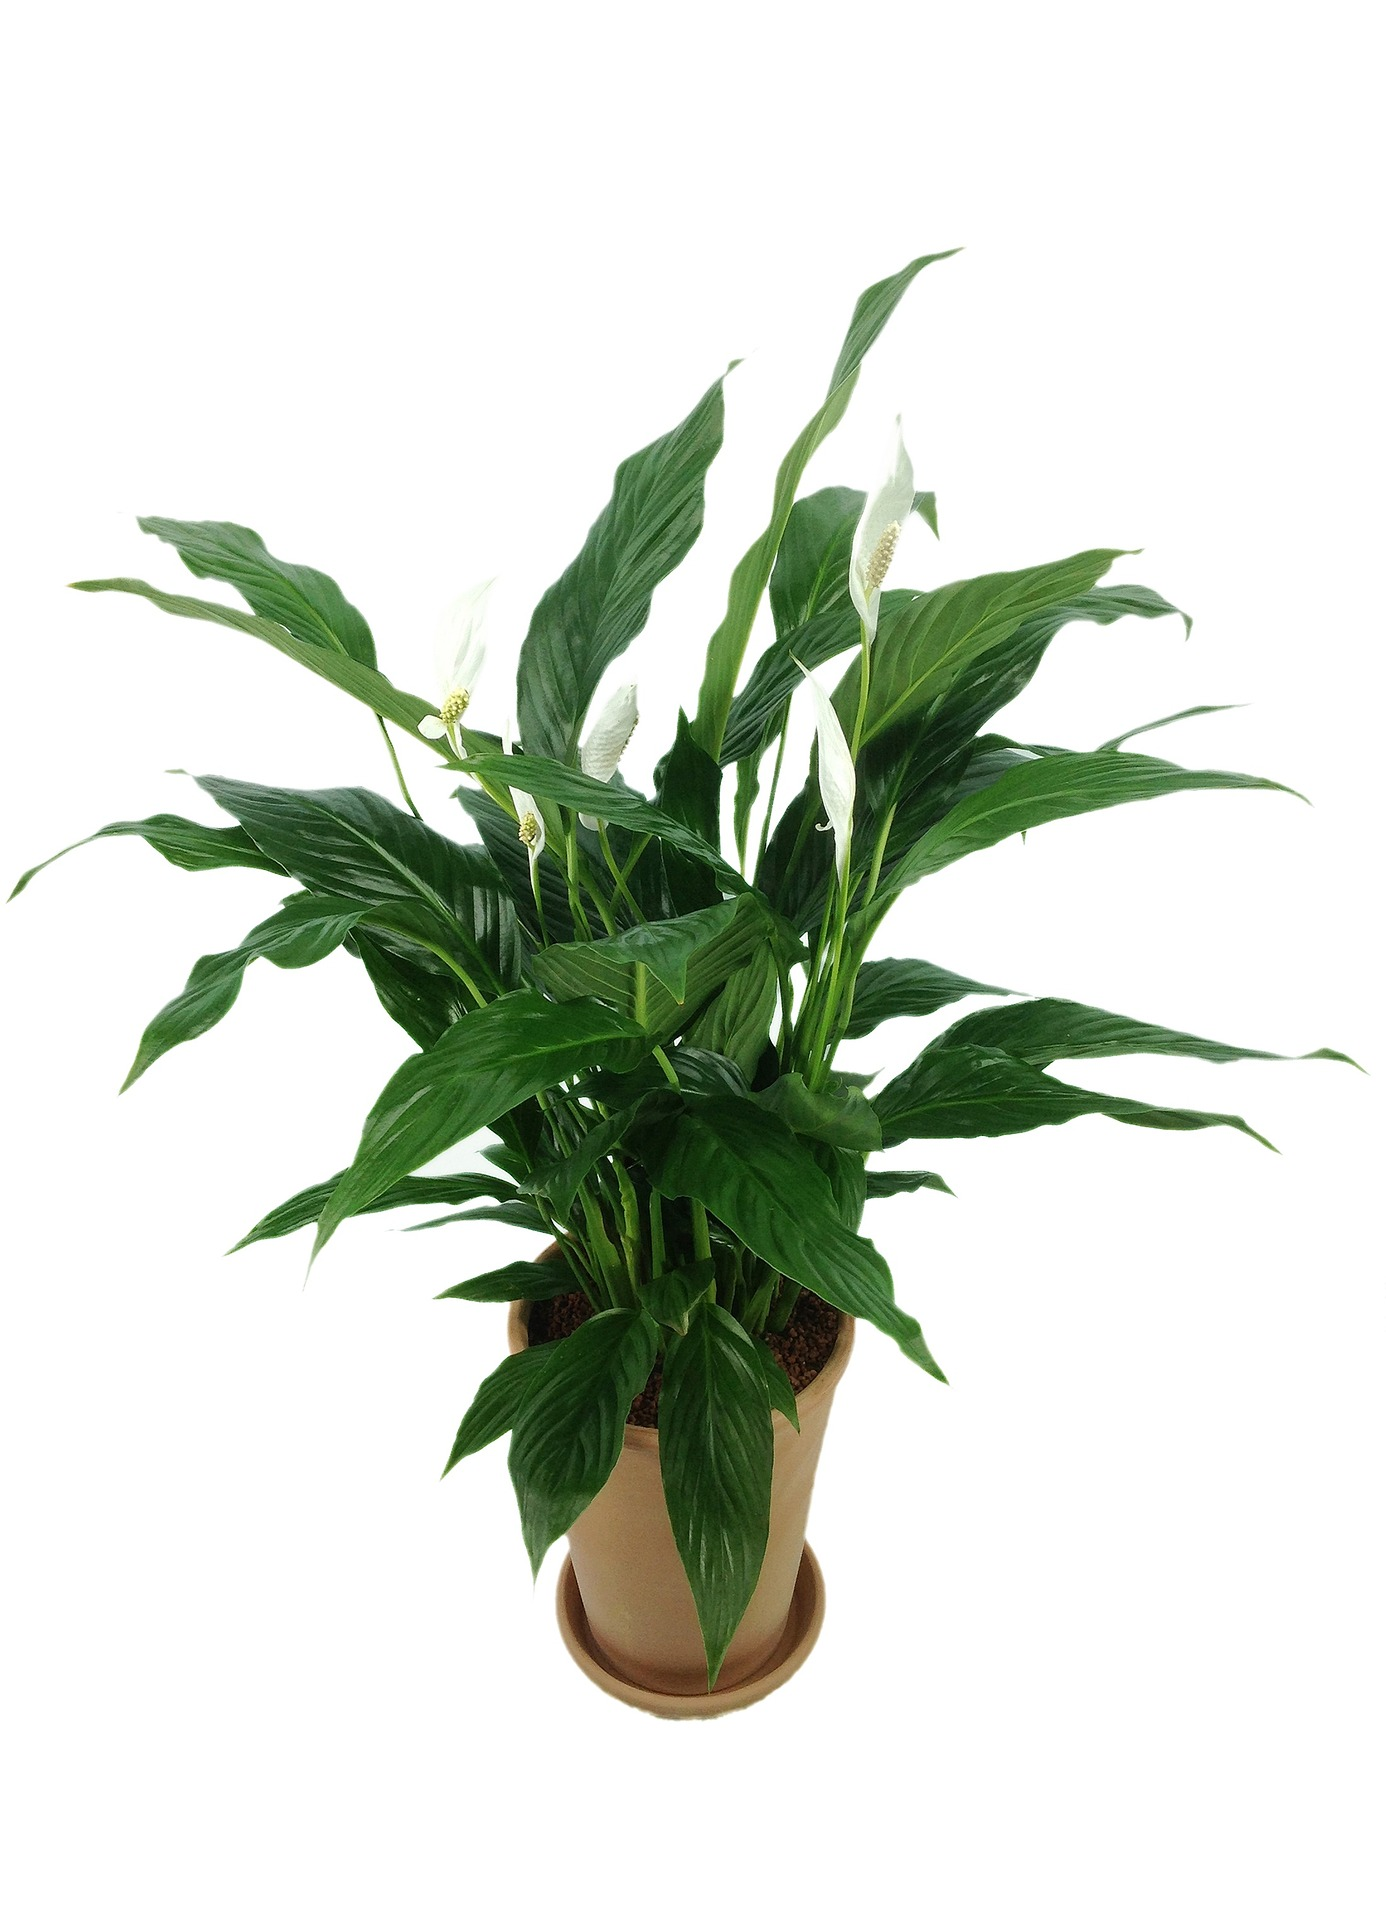 How to Care for Peace lily Houseplants?